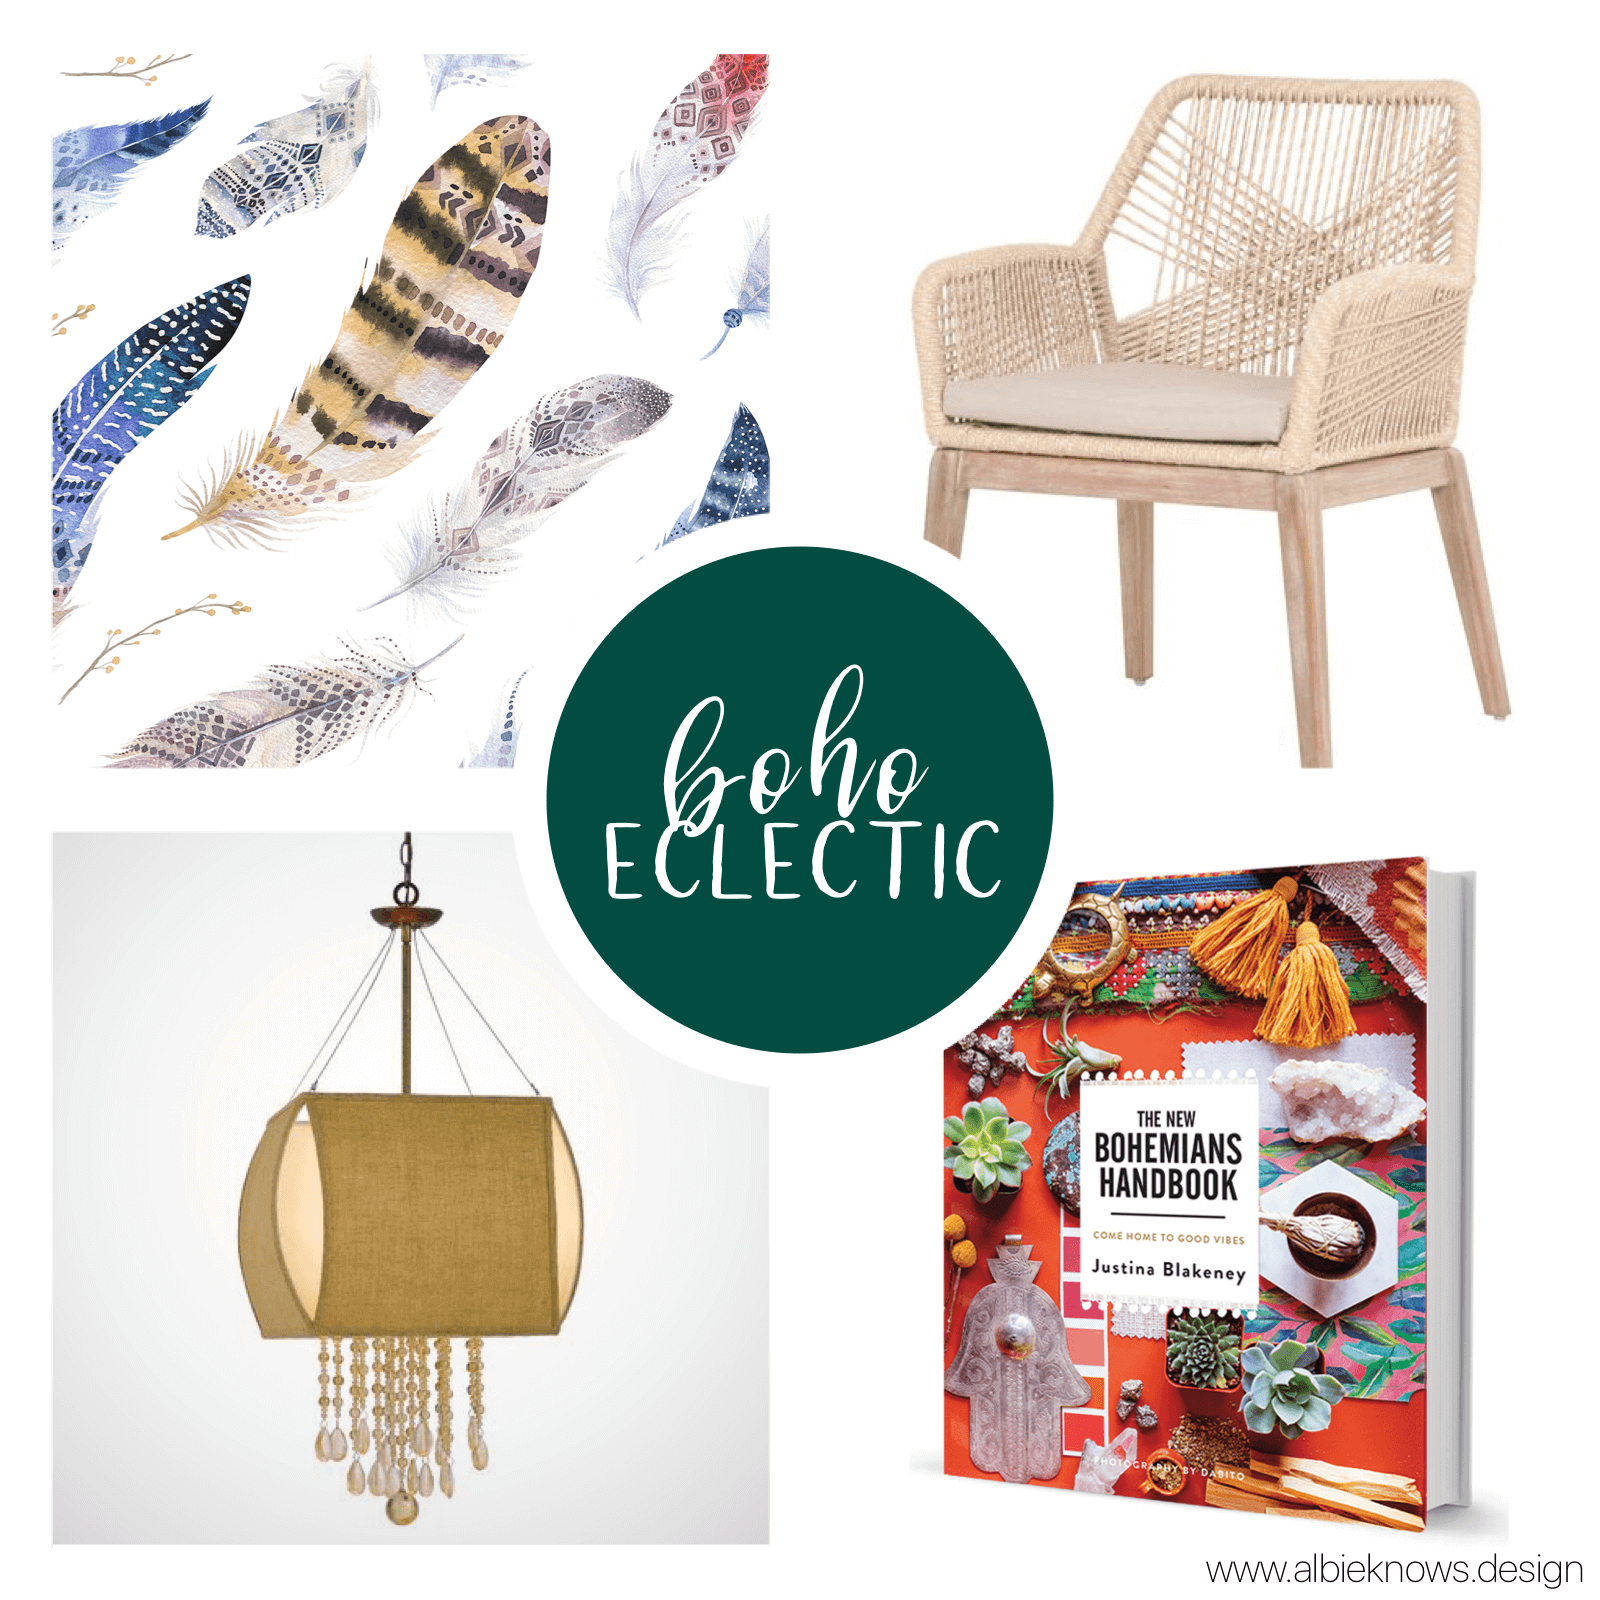 You live an unconventional, artistic life, making you something of a free-spirit. You're not afraid to layer textures, mix styles, or try bold prints & colors, that most would shy away from. Your space expresses a well-traveled, lived in feel, while still being purposeful & collected.    READ MORE